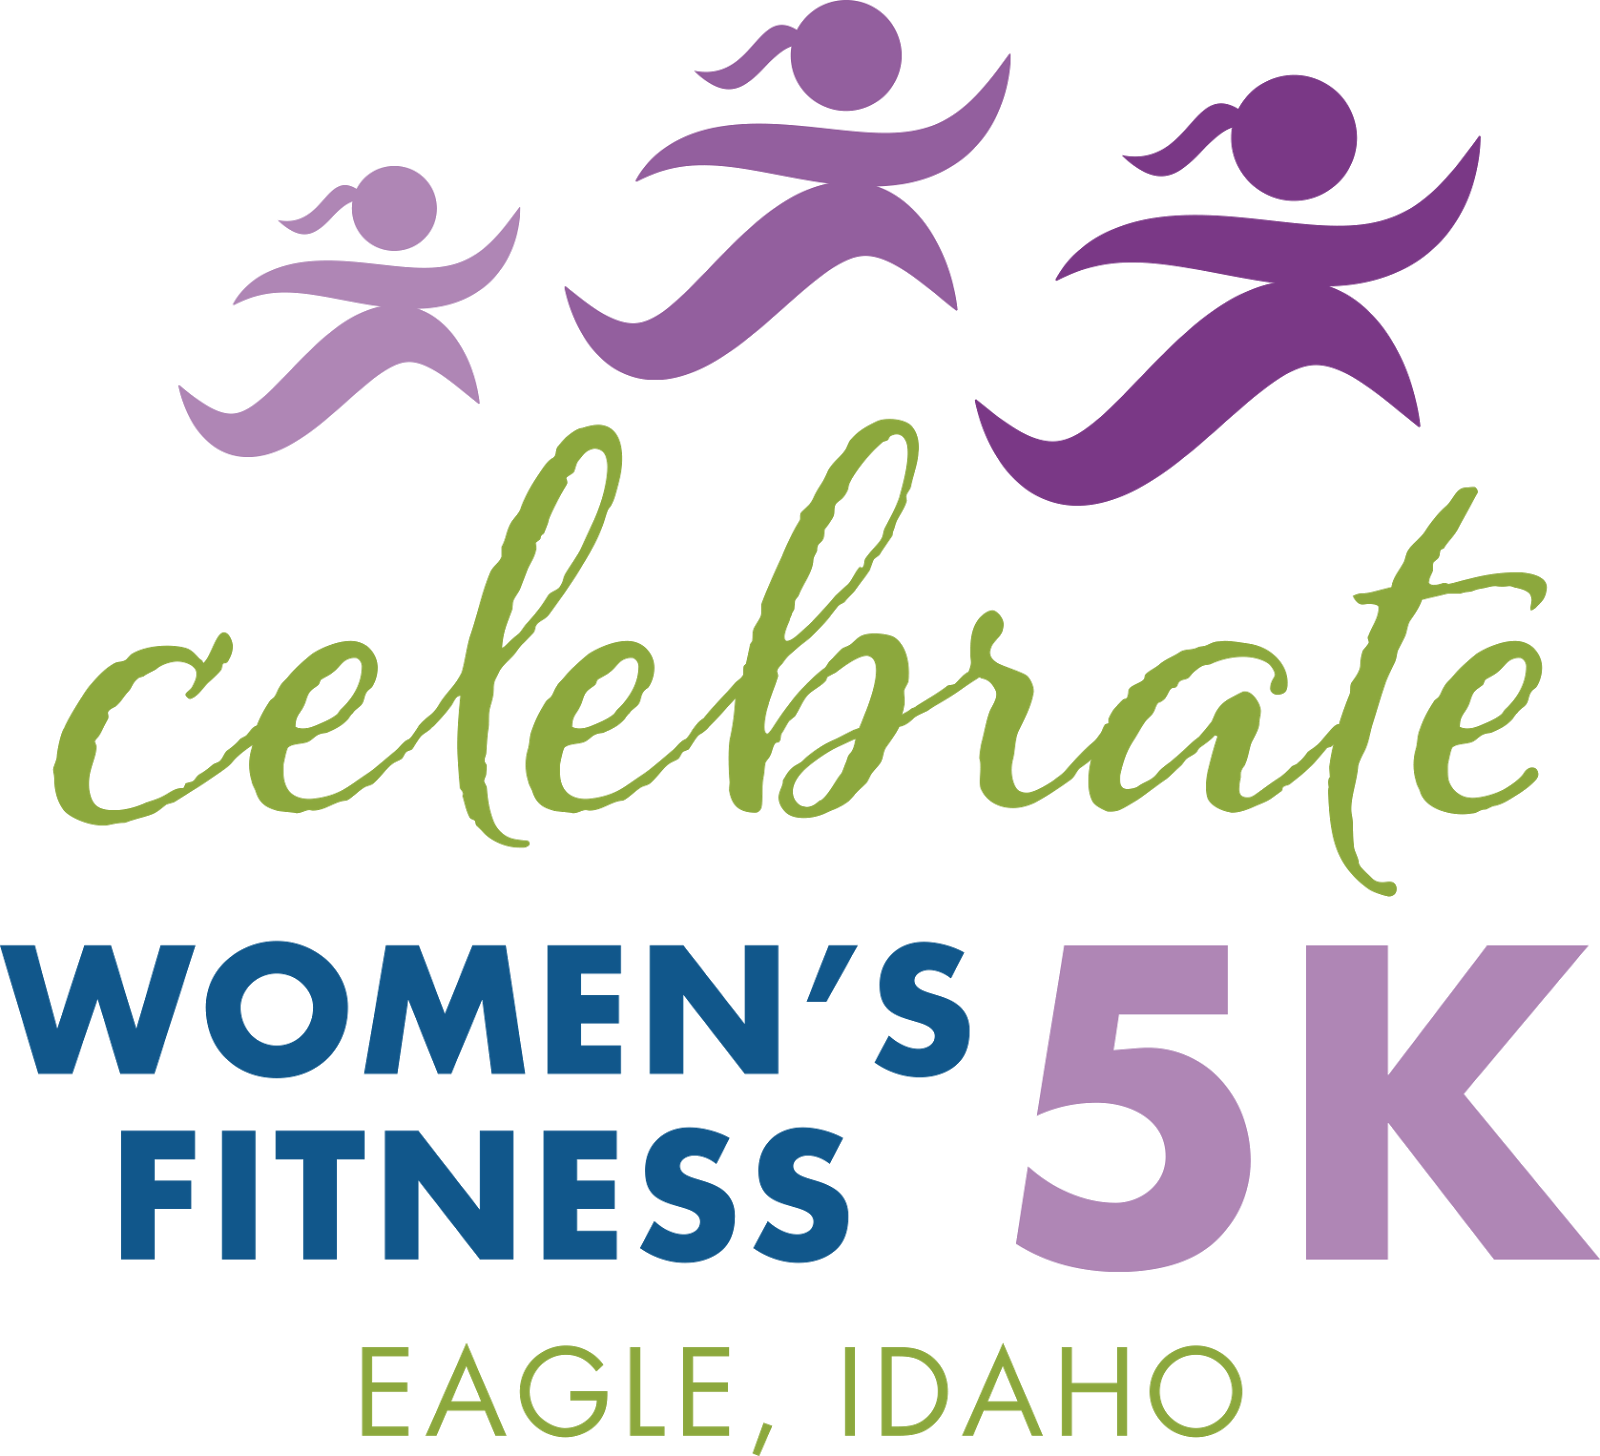 I'll Be at Celebrate Women's Fitness, Will You?